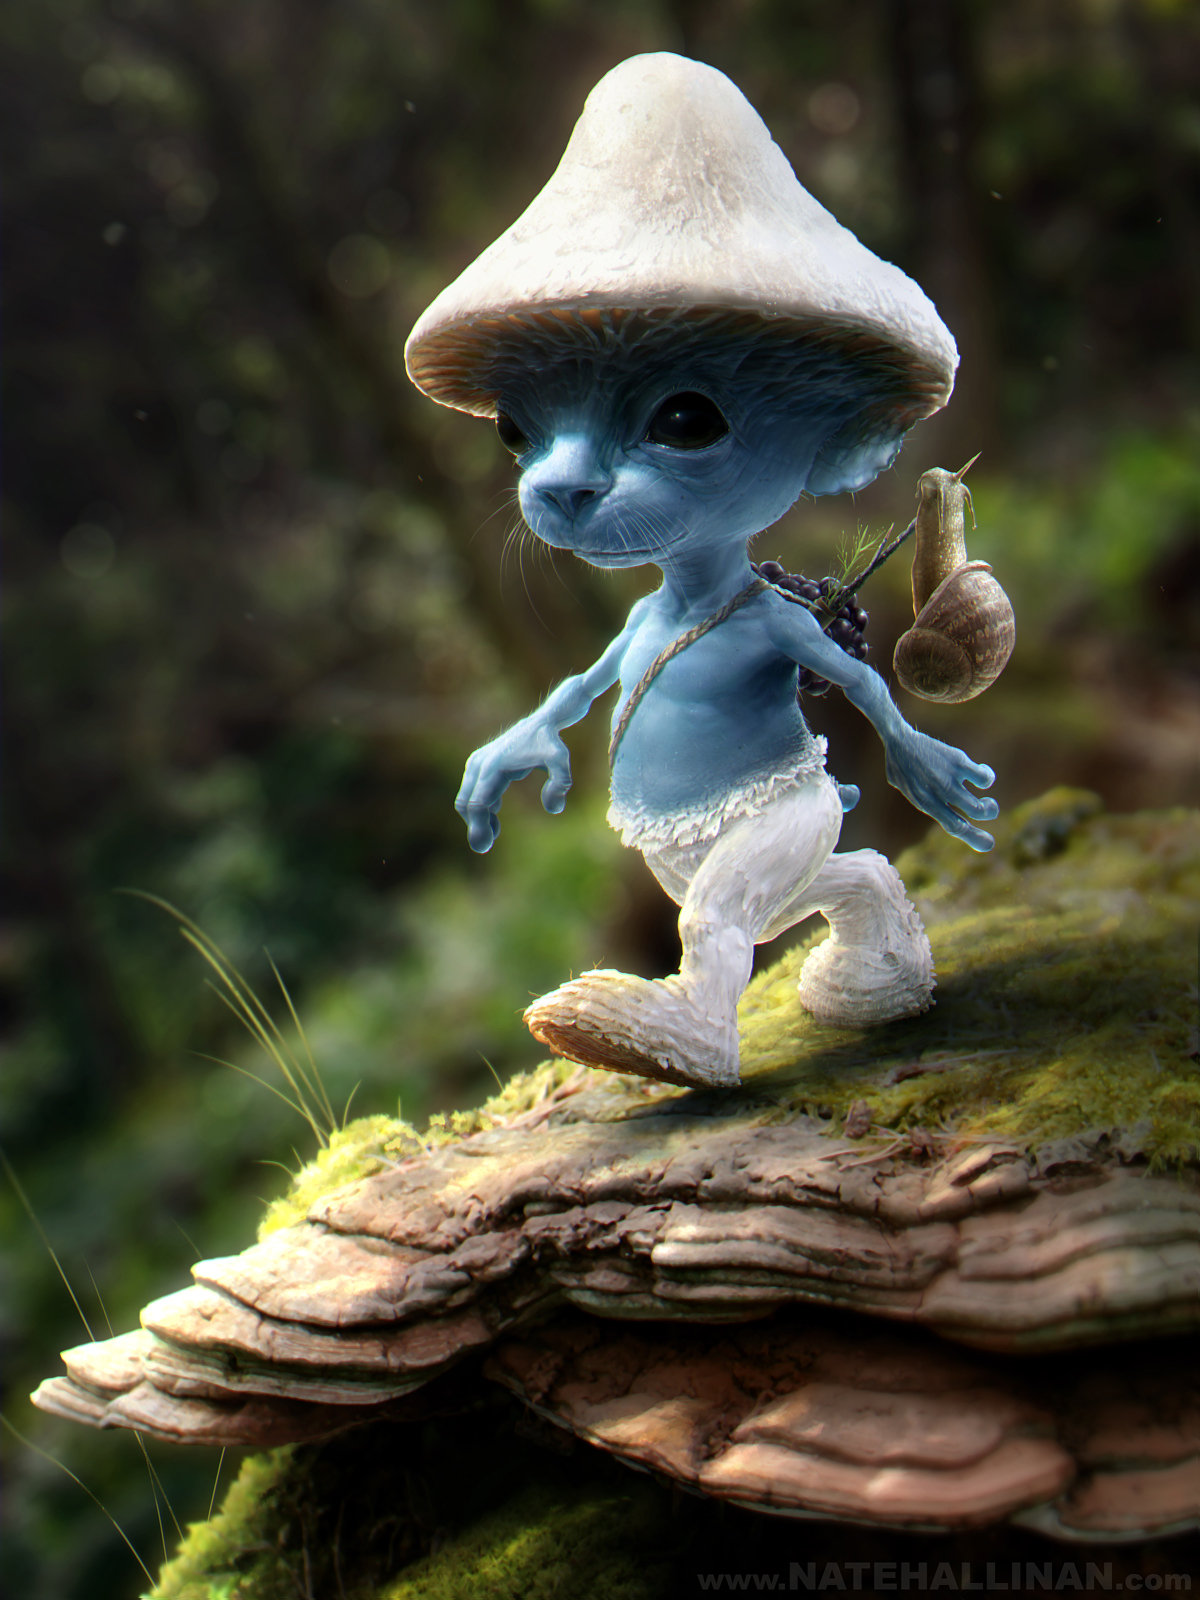 Nate hallinan natehallinan smurfsighting medium